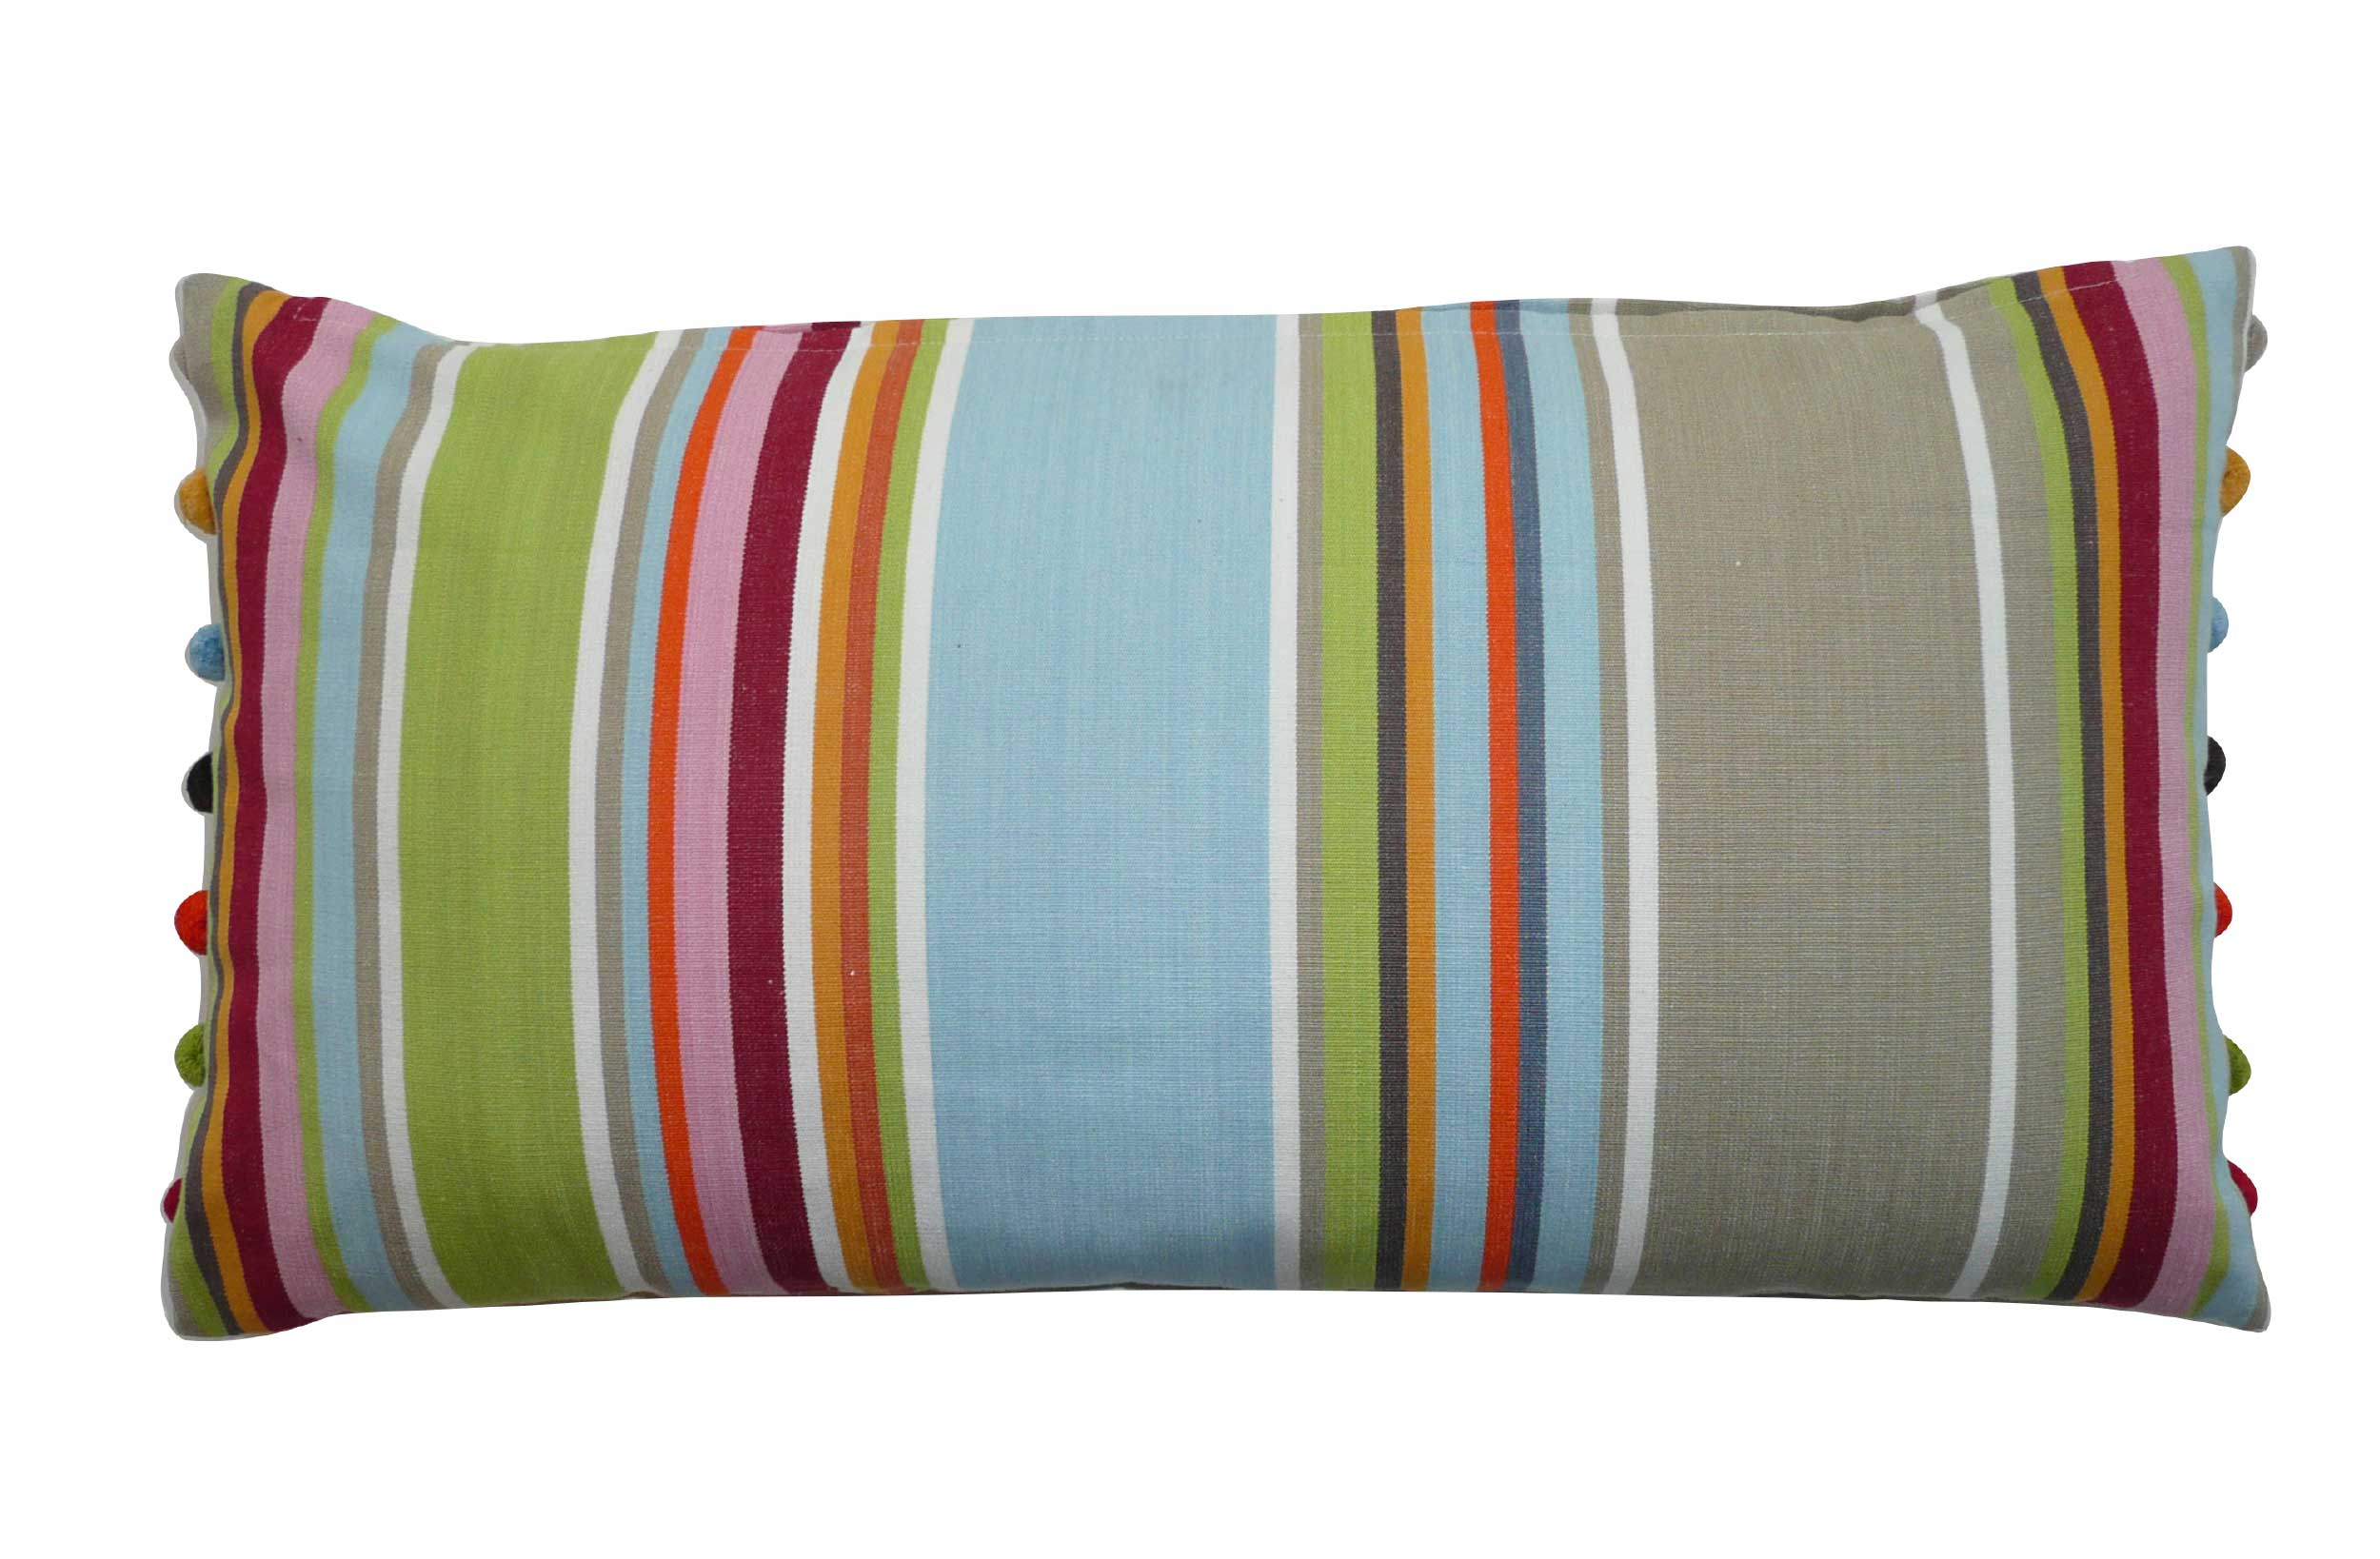 Striped Oblong Cushions with bobble fringe  grey, blue, light green